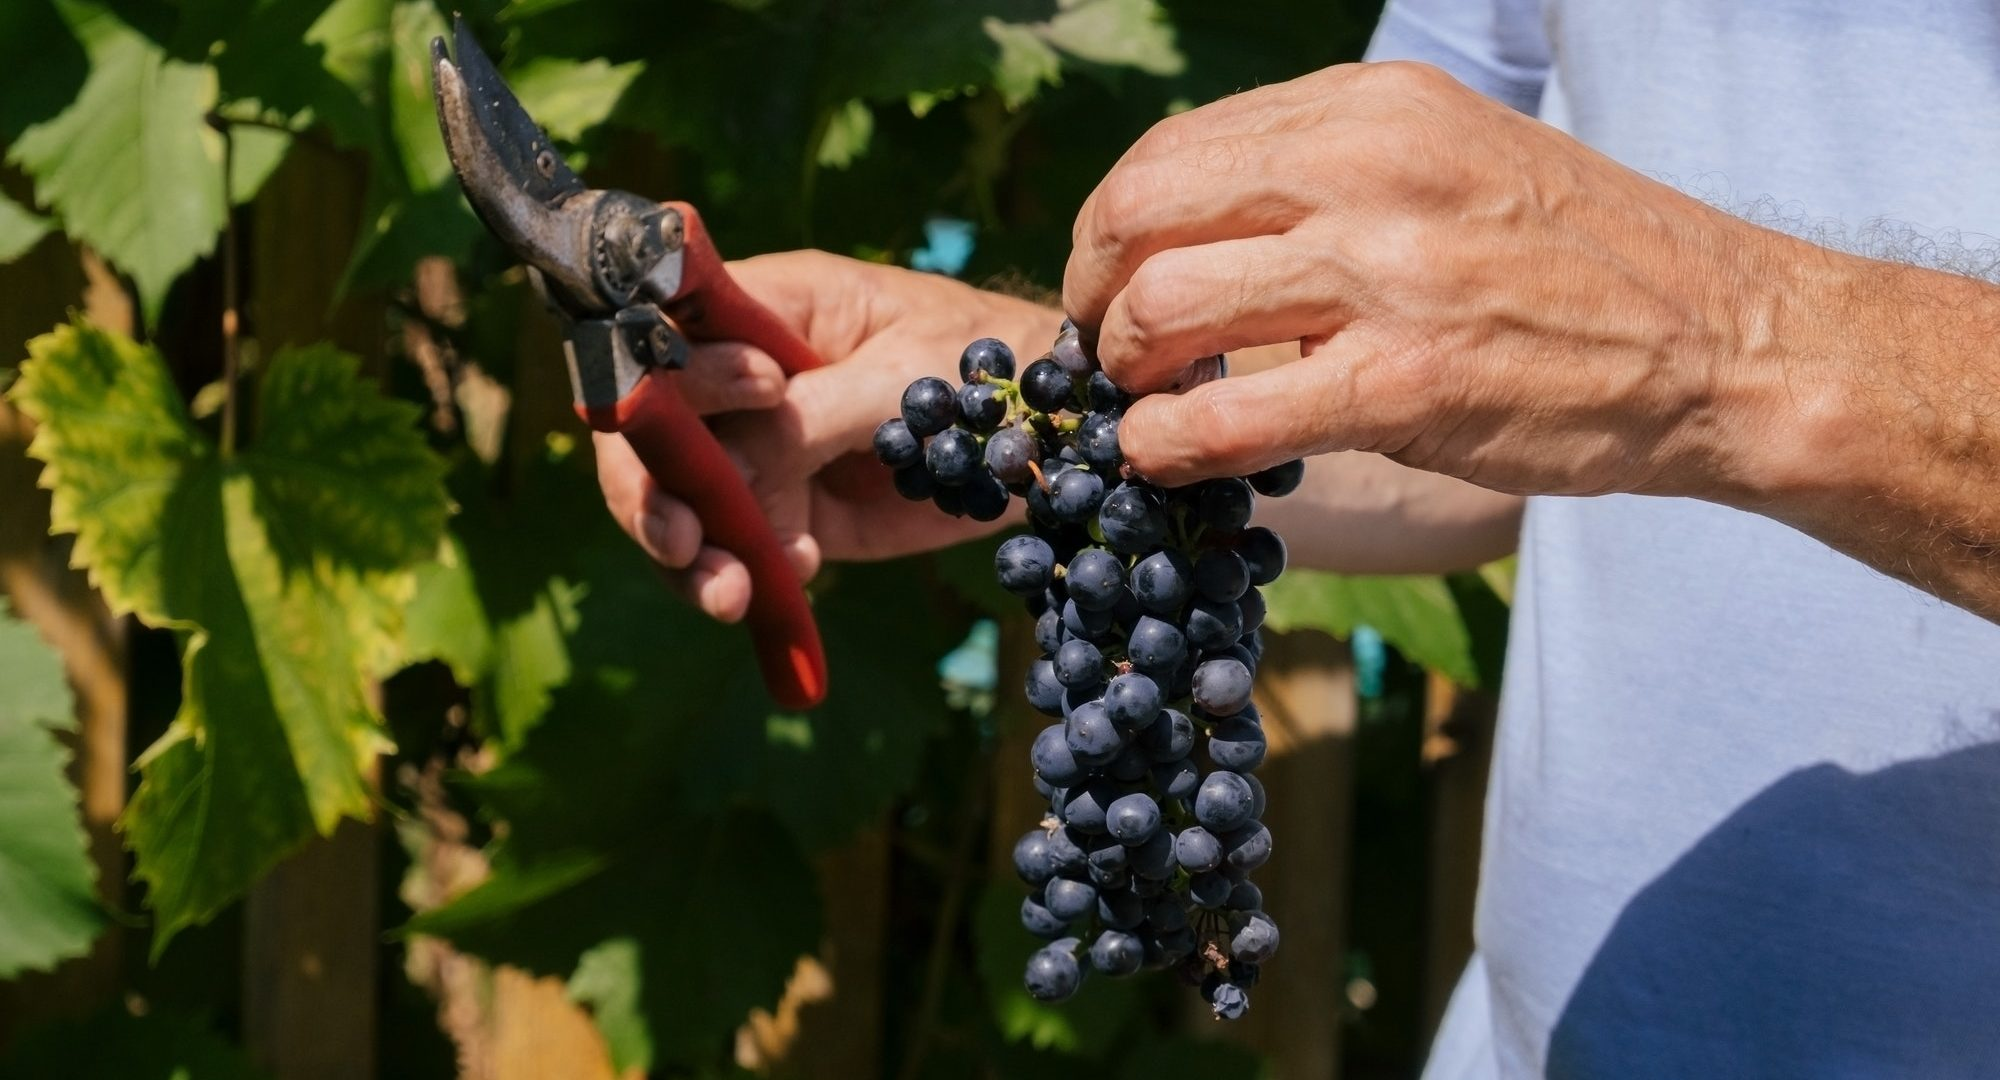 close up of male hands with pruning shears cutting a bunch of red grapes, winemaking and harvesting